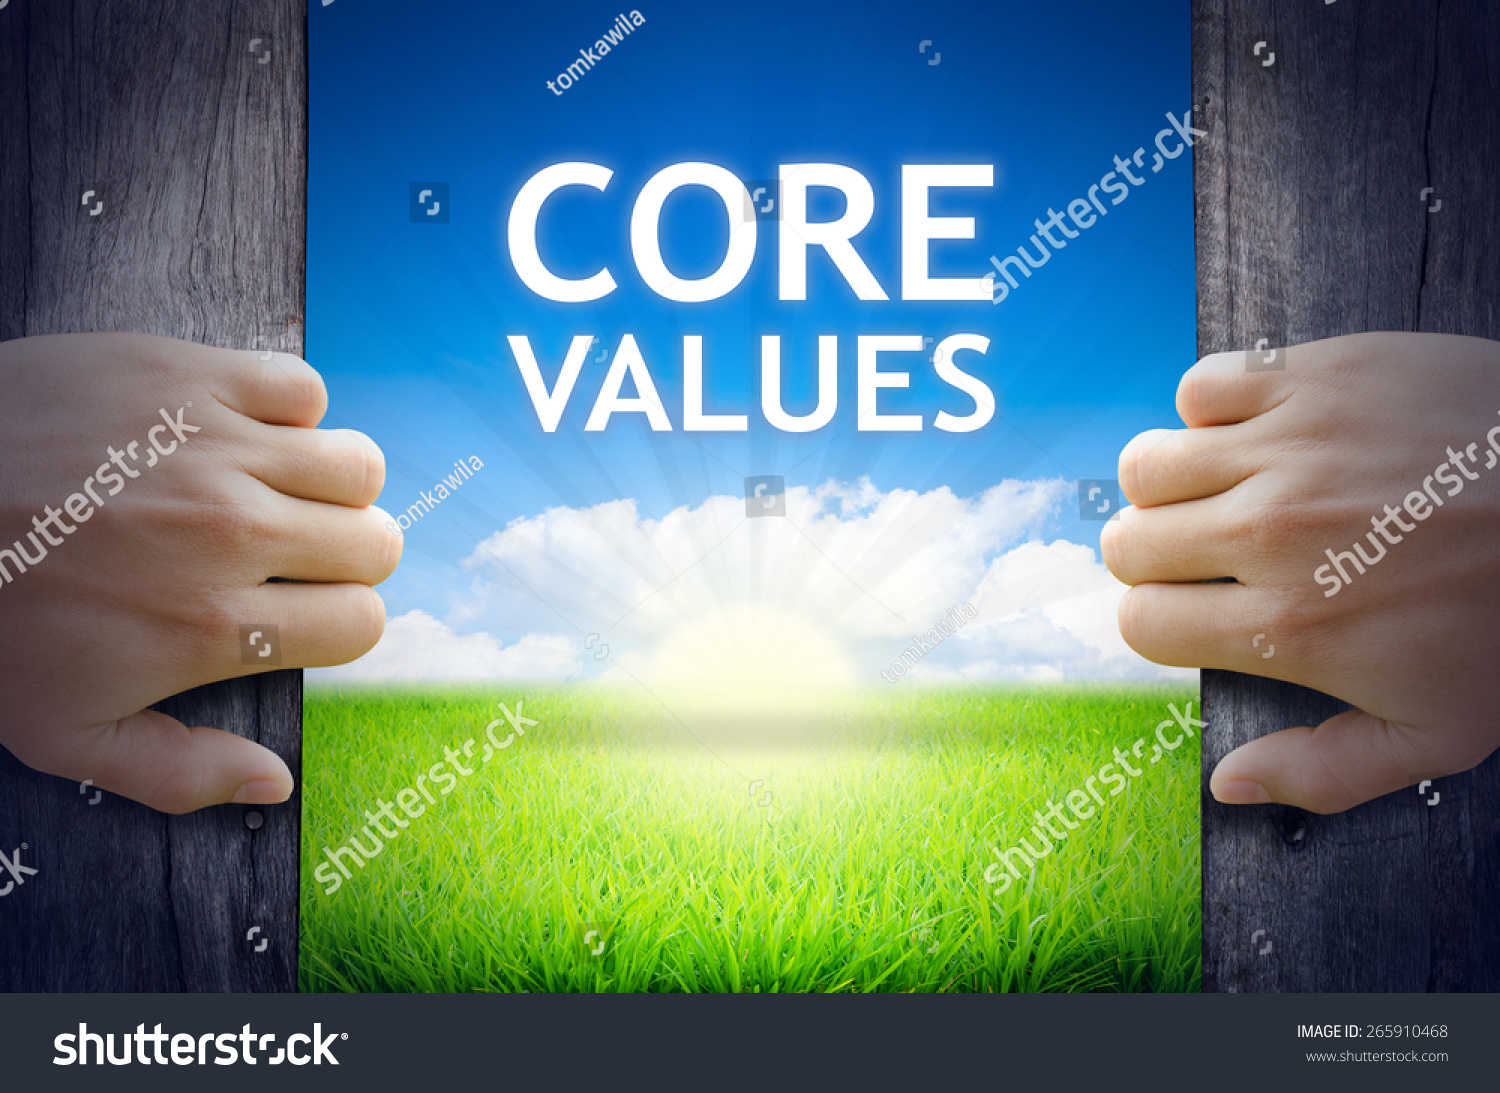 Core Values Hands opening a wooden door then found a texts floating among new world as green grass field Blue sky and the Sunrise